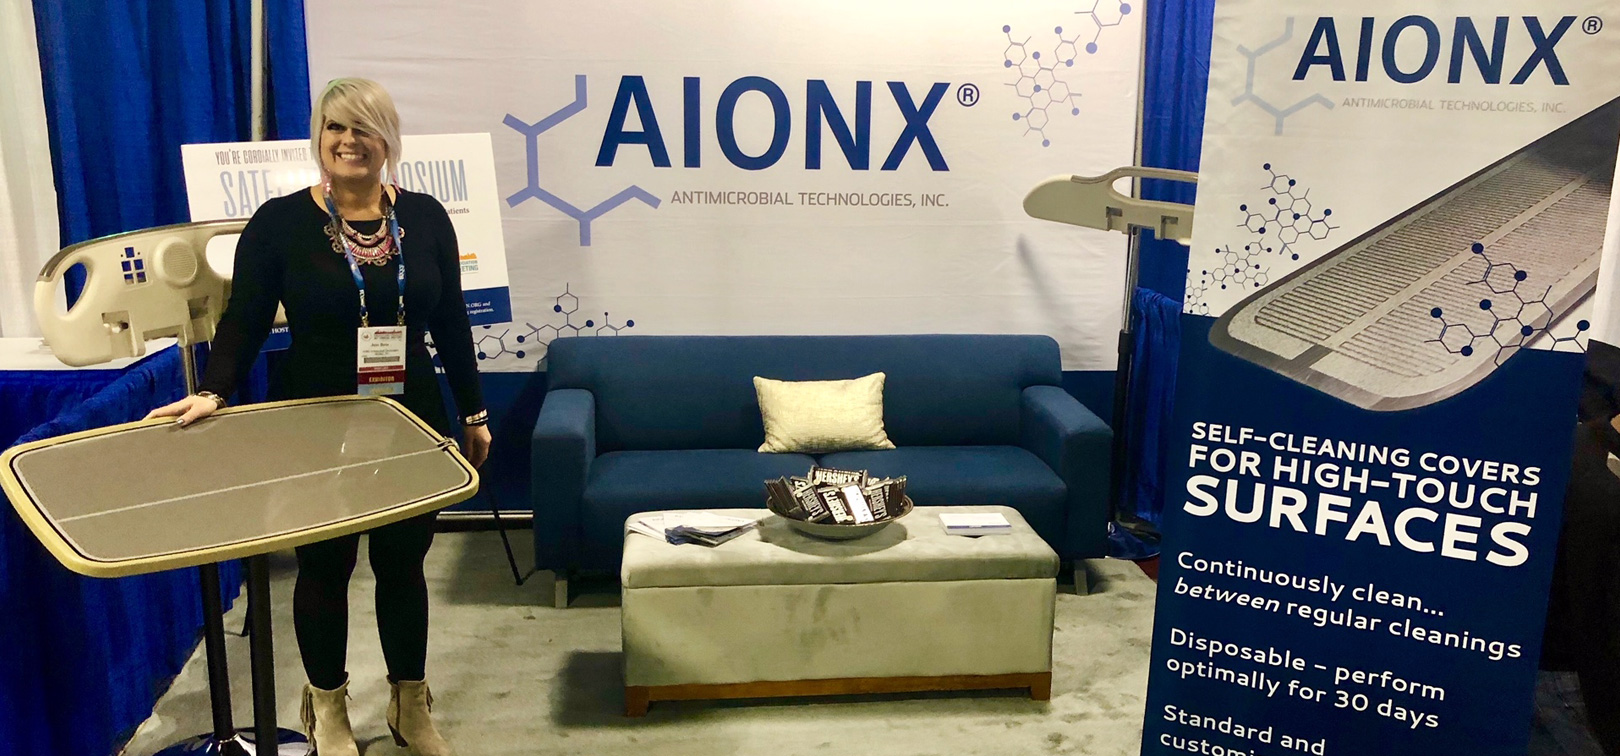 AIONX® Satellite Symposium At The American Burn Association's 50th Annual Meeting, April 10-13, 2018